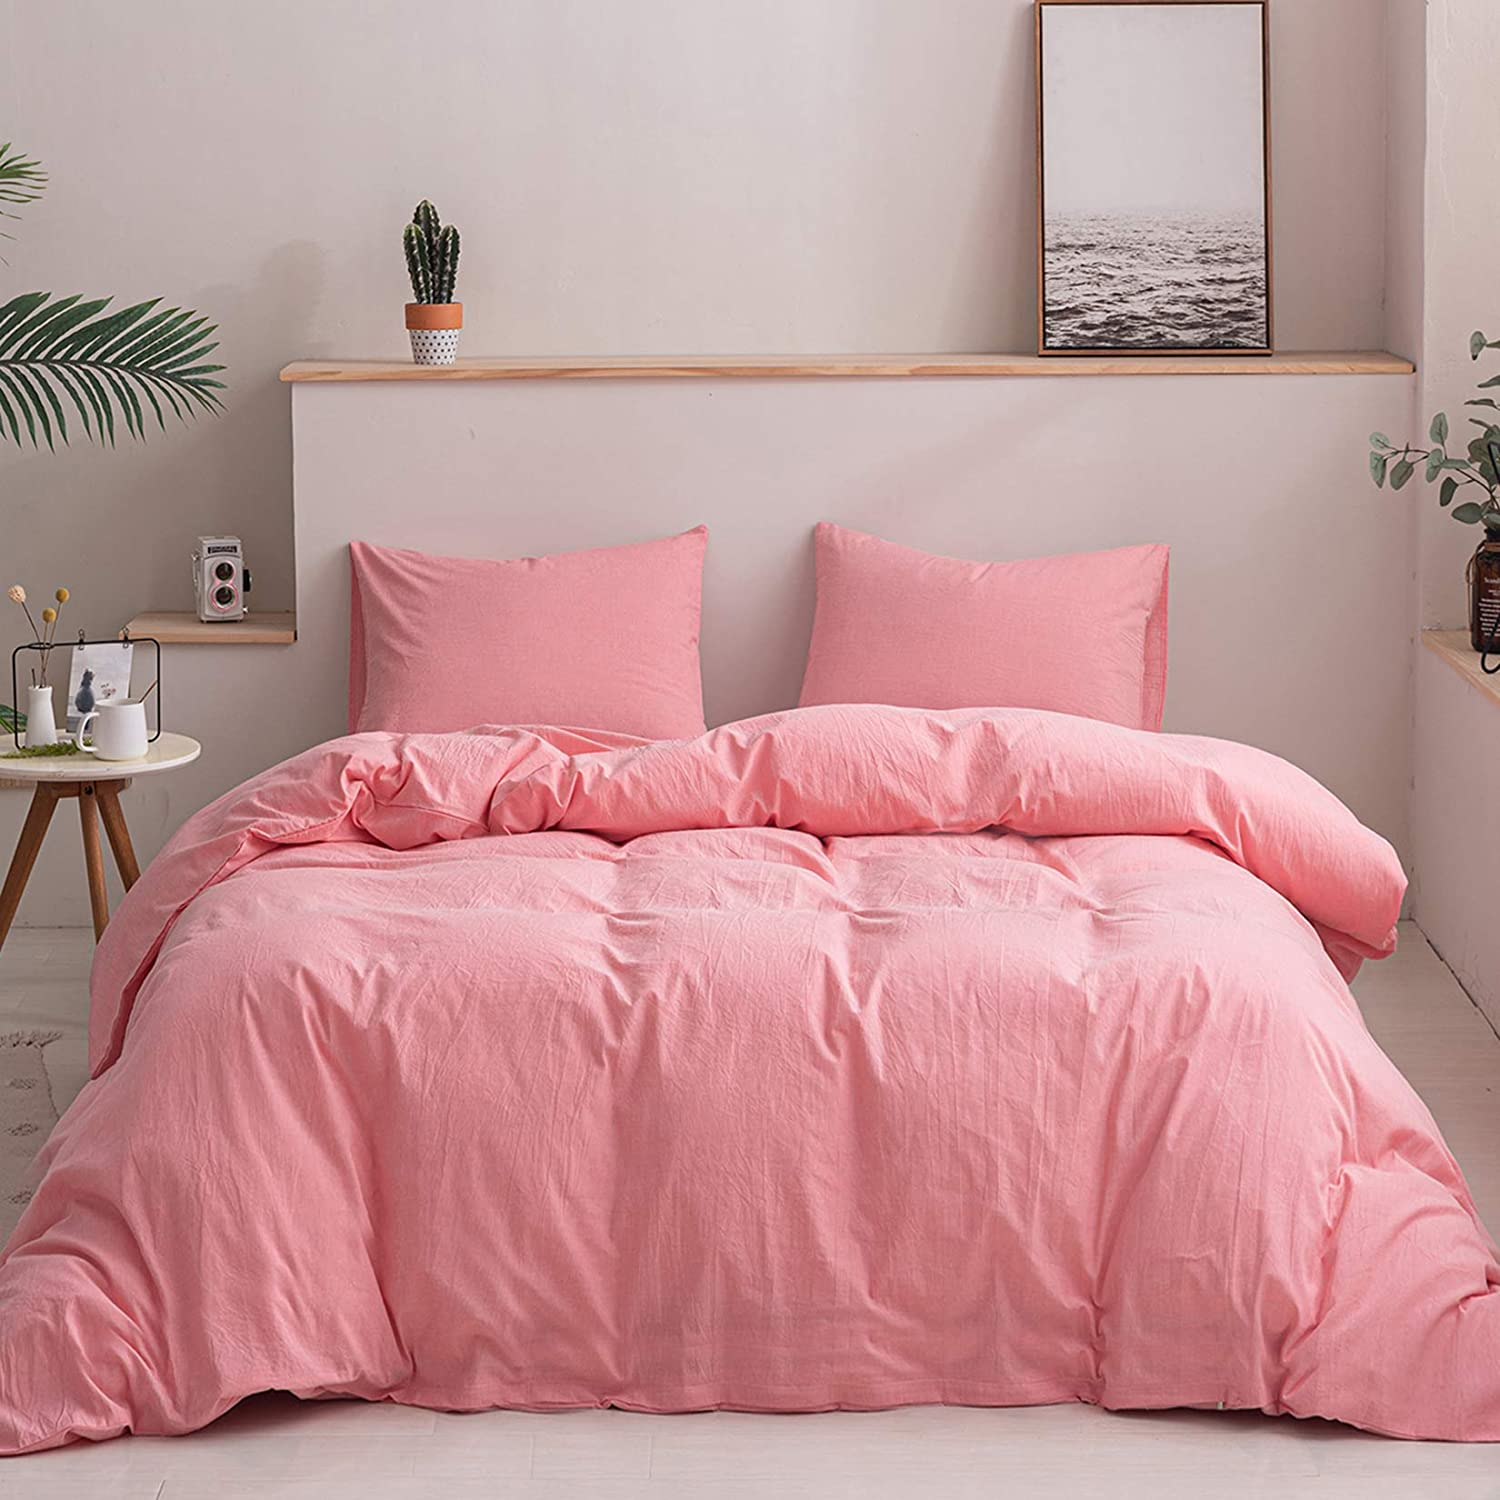 Homcosan 100% Manufacturer direct delivery Washed Cotton Duvet Cover 9 Set Size King 3-Piece Max 81% OFF